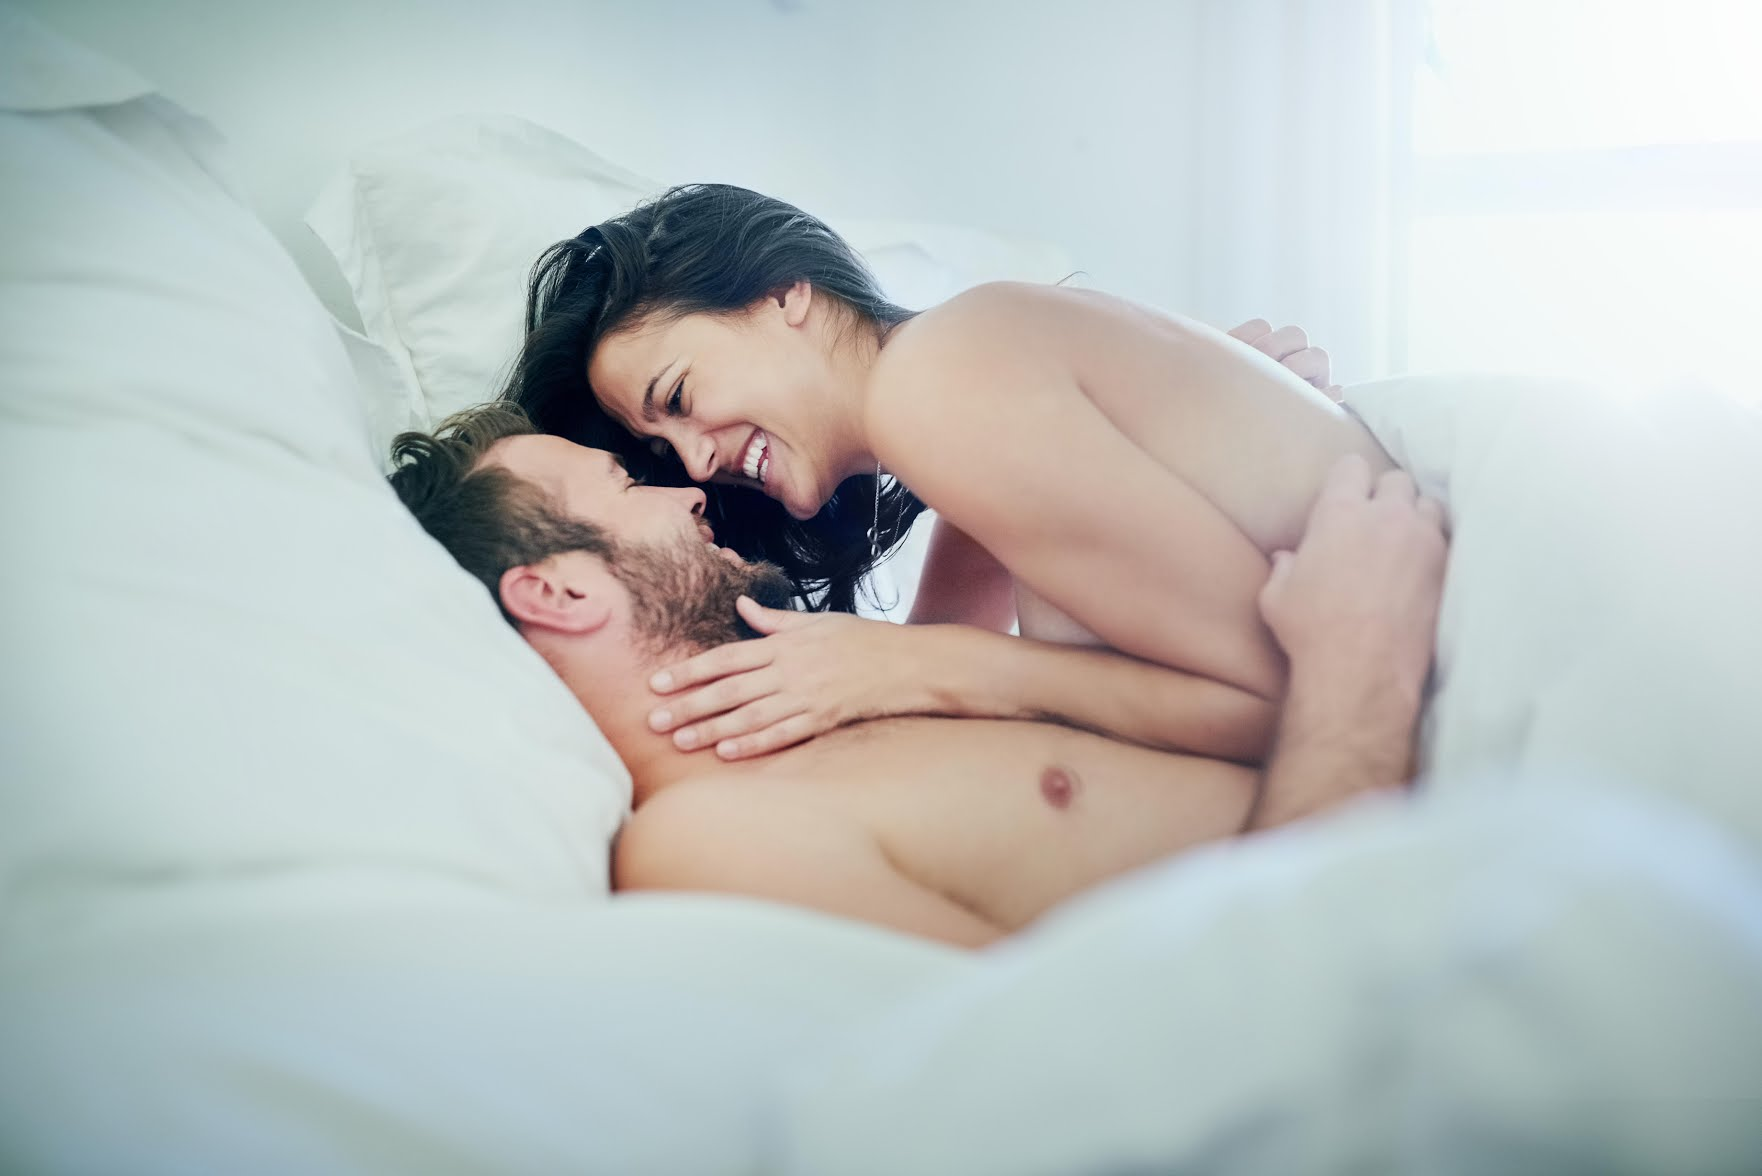 There are nine erogenous zones you should focus on when having sex with your man